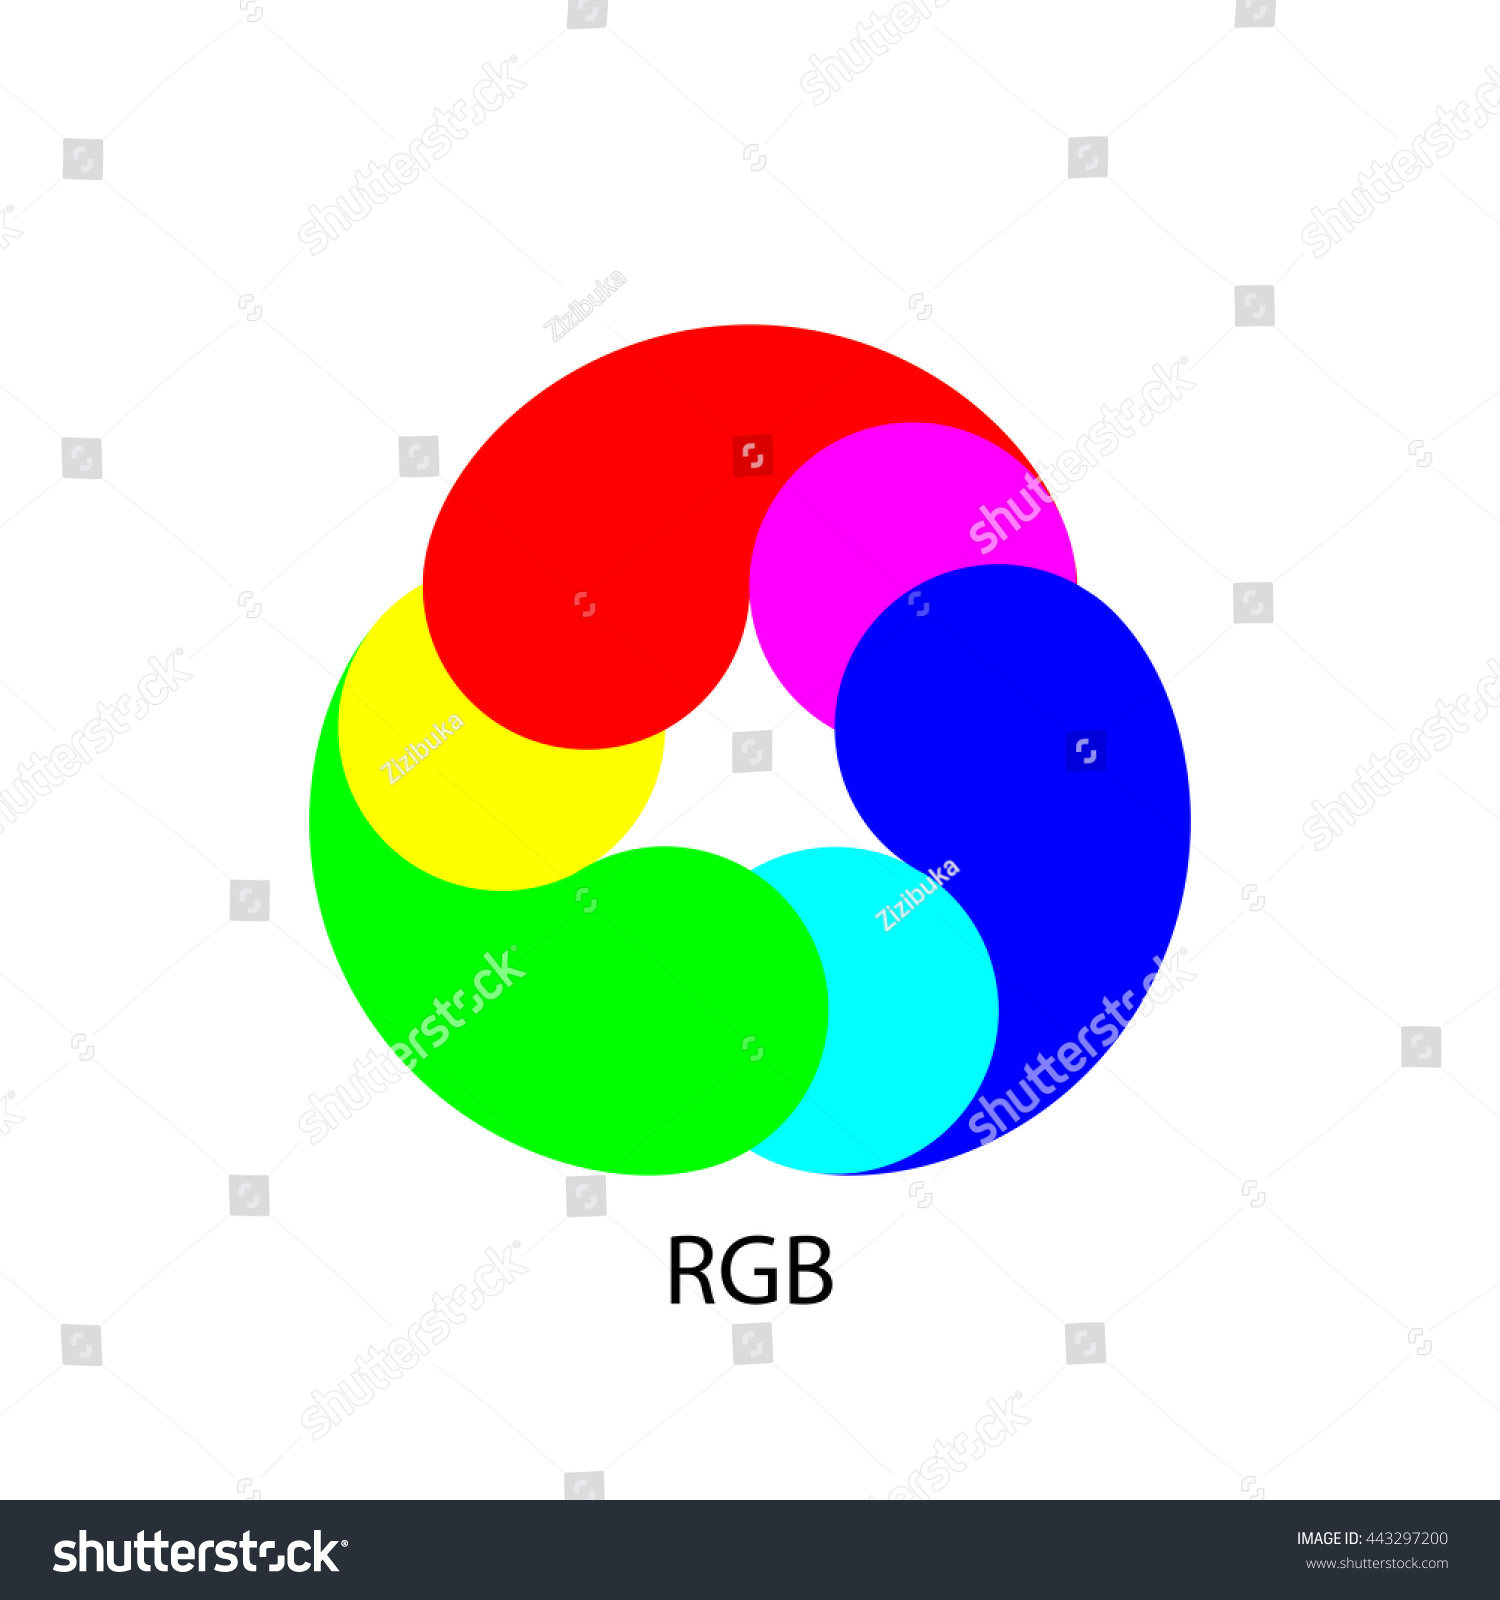 Vector chart explaining rgb color modes stock vector 443297200 vector chart explaining rgb color modes red green and blue colors with yellow geenschuldenfo Image collections